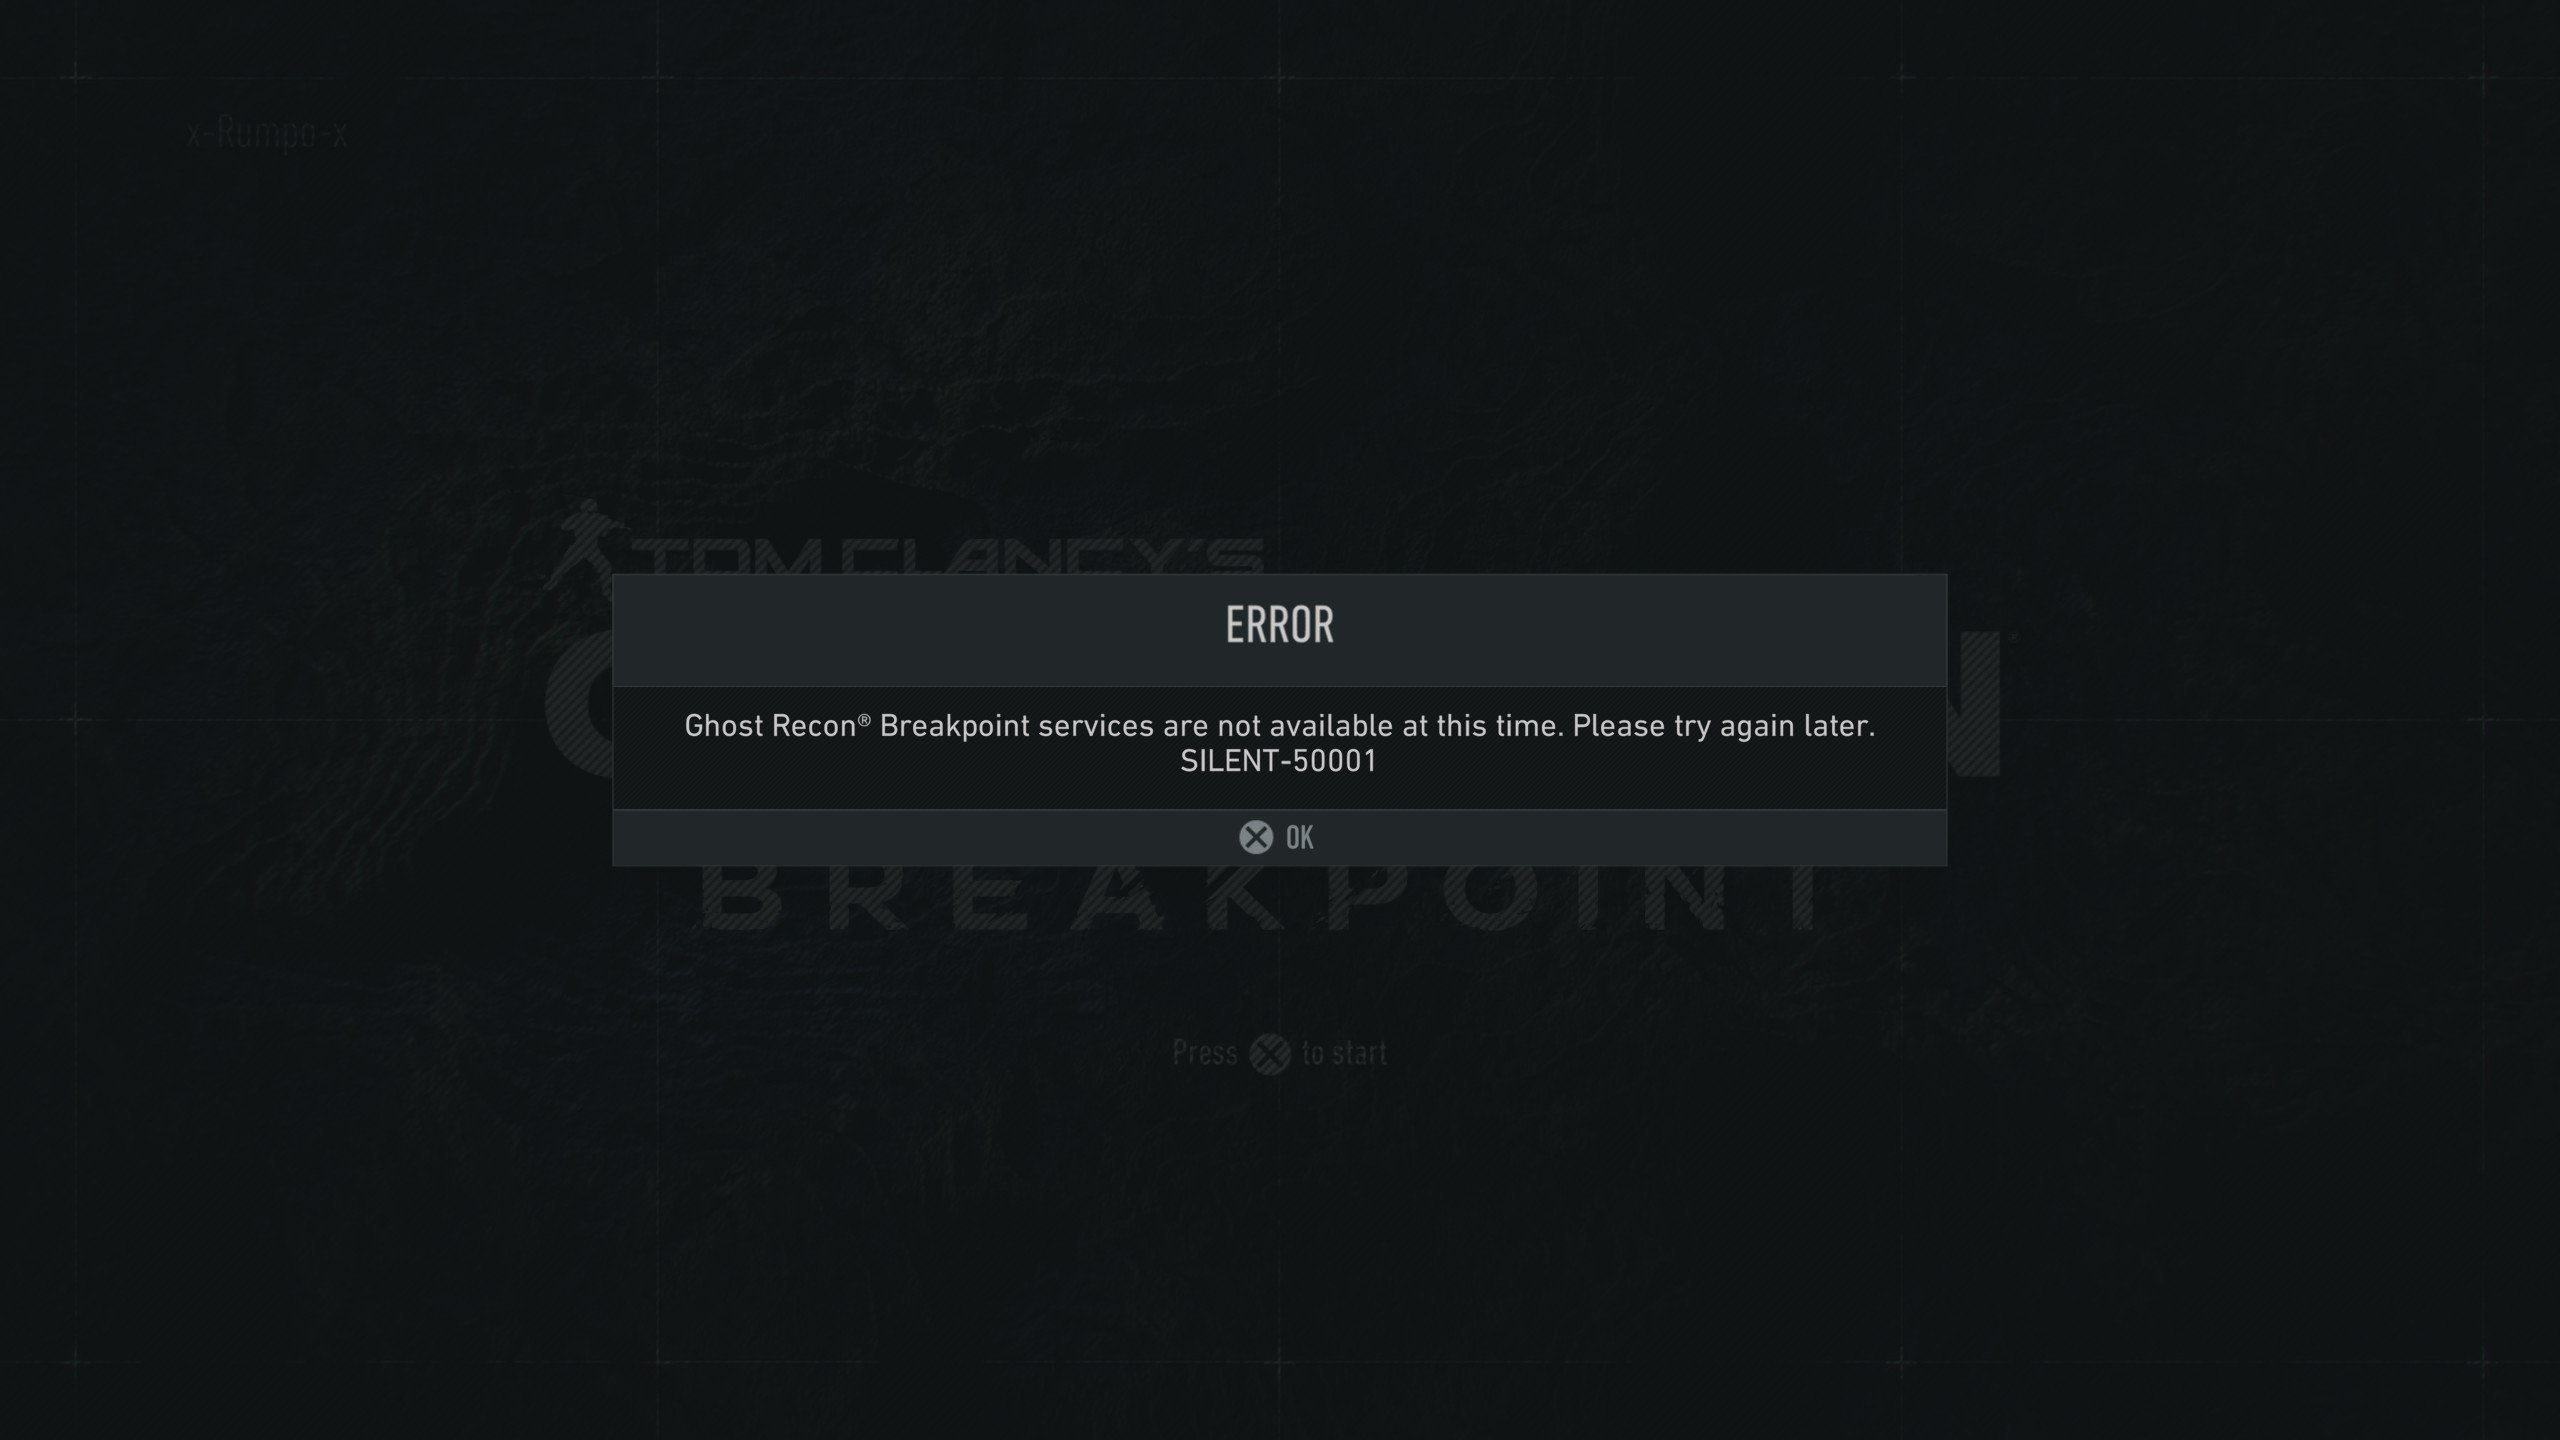 SILENT-5000 Error Ghost Recon Breakpoint